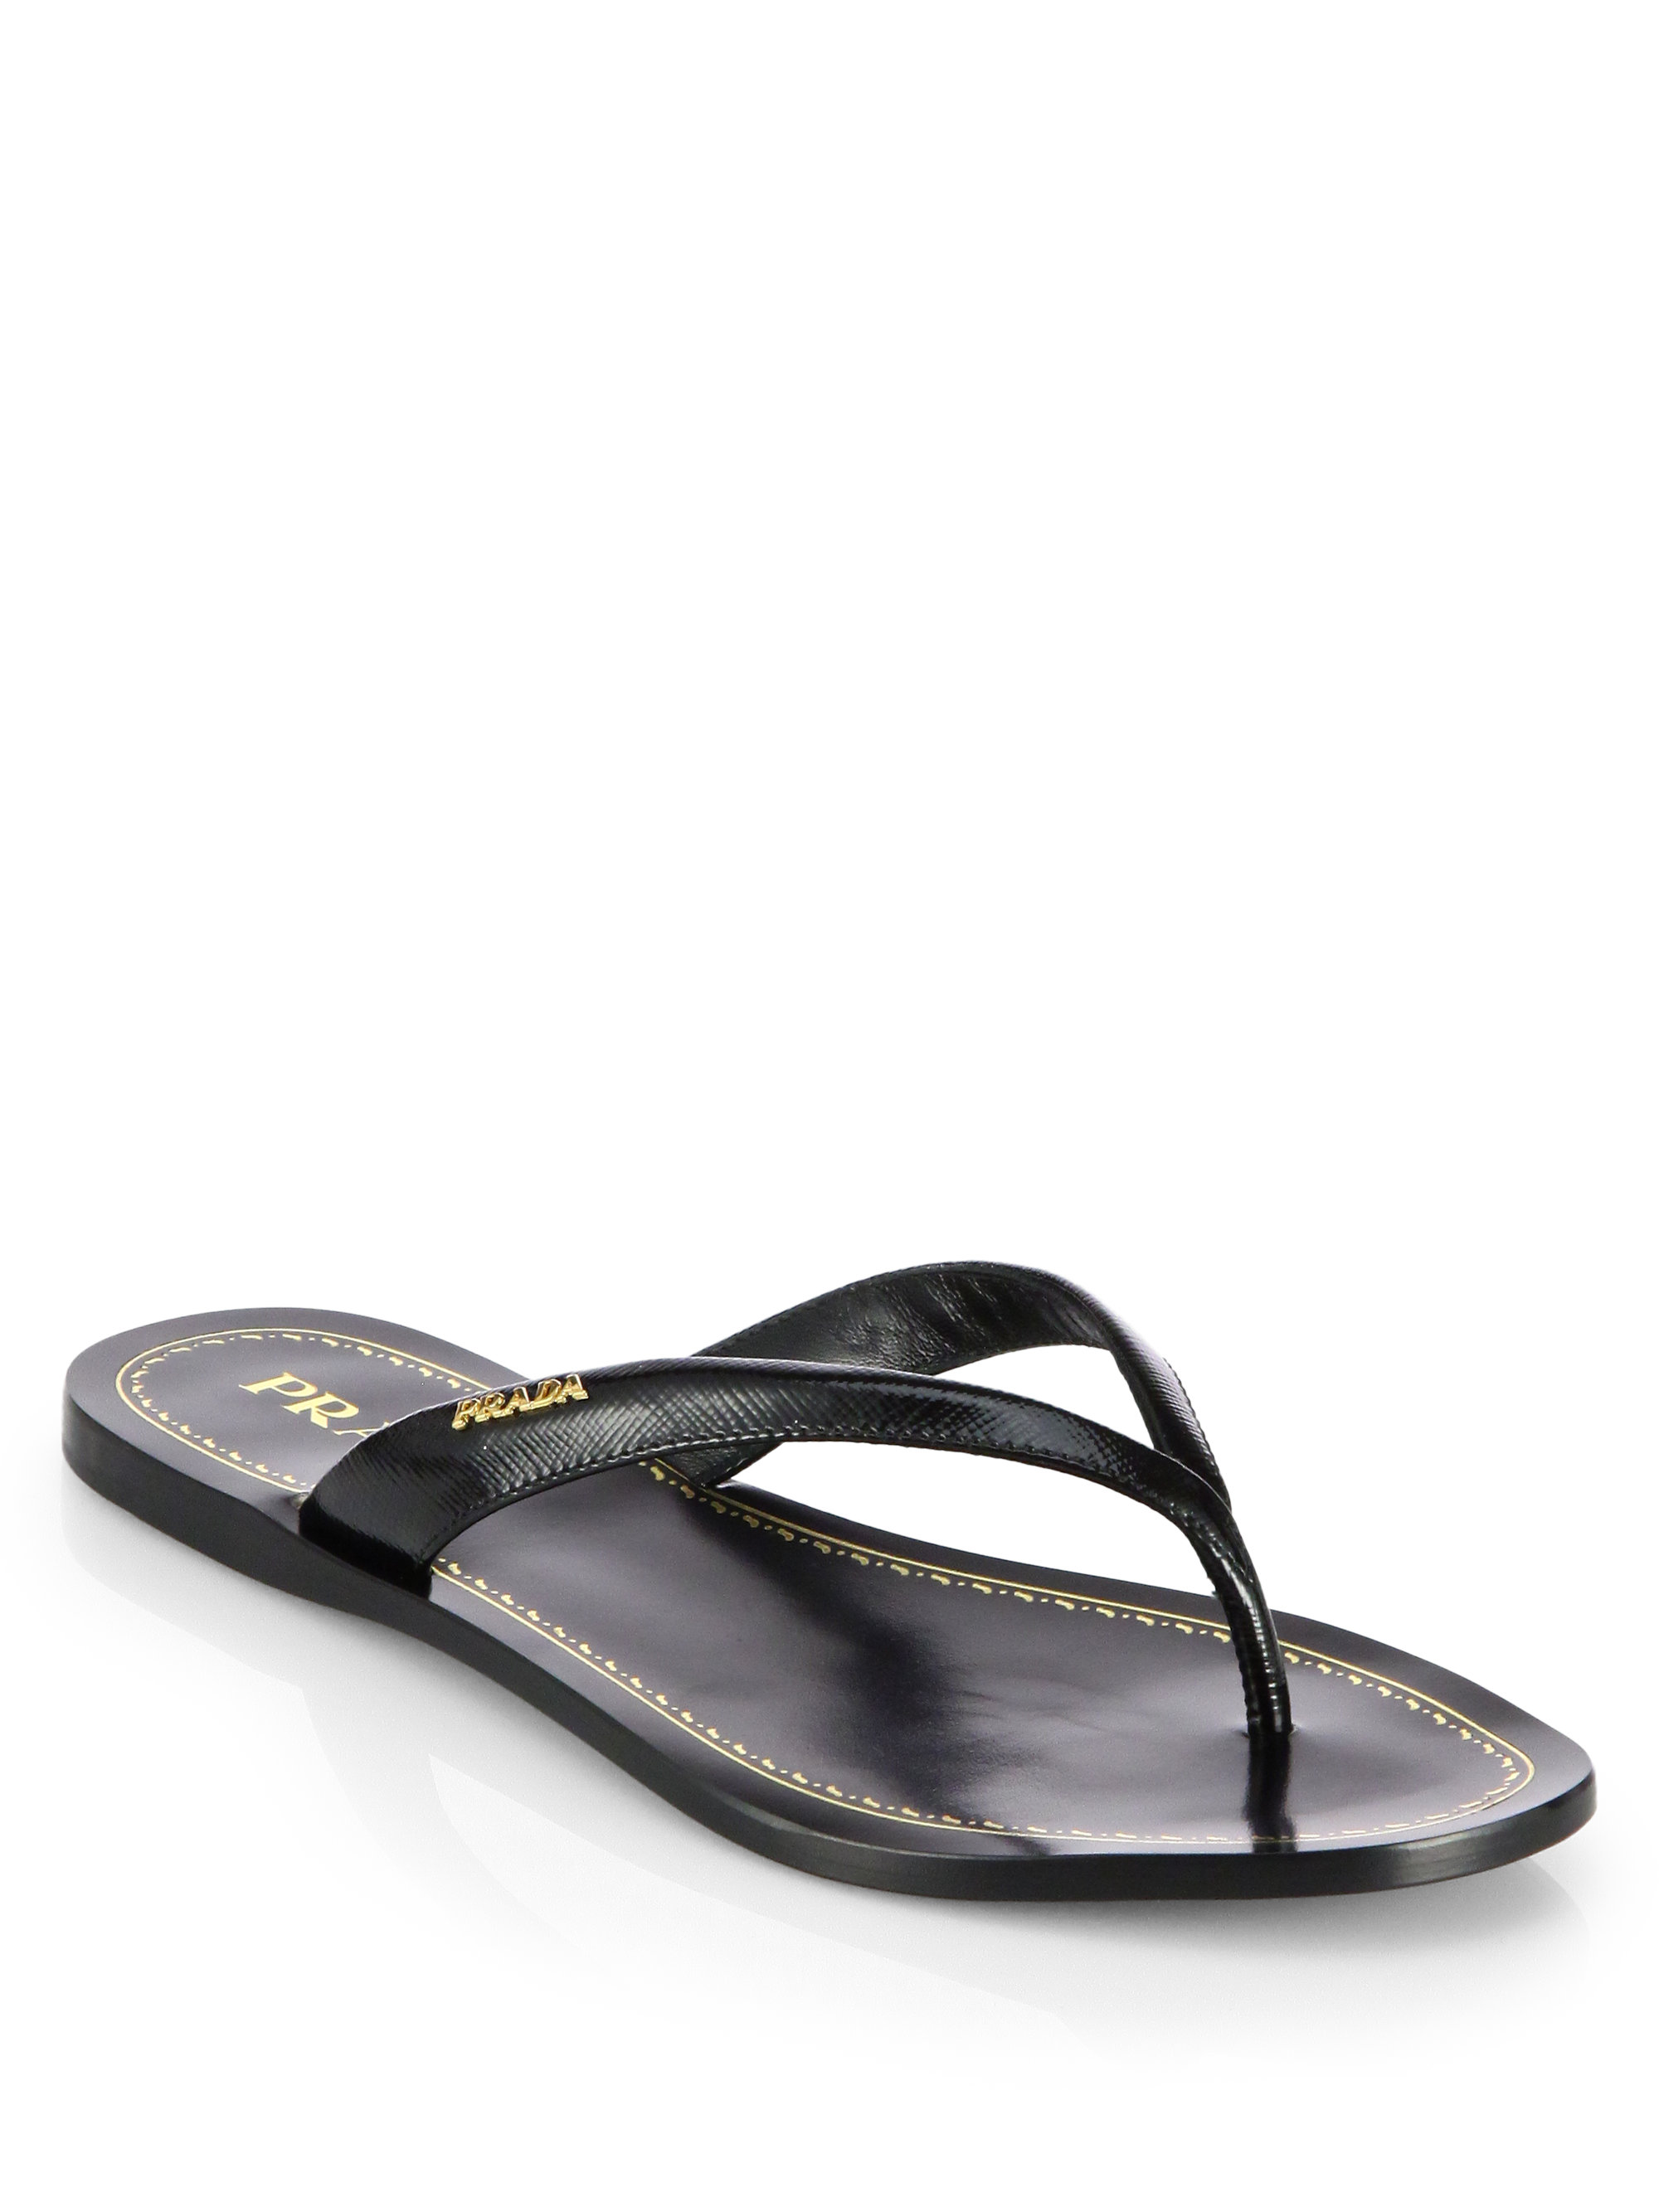 Prada Saffiano Patent Leather Thong Sandals In Black Lyst